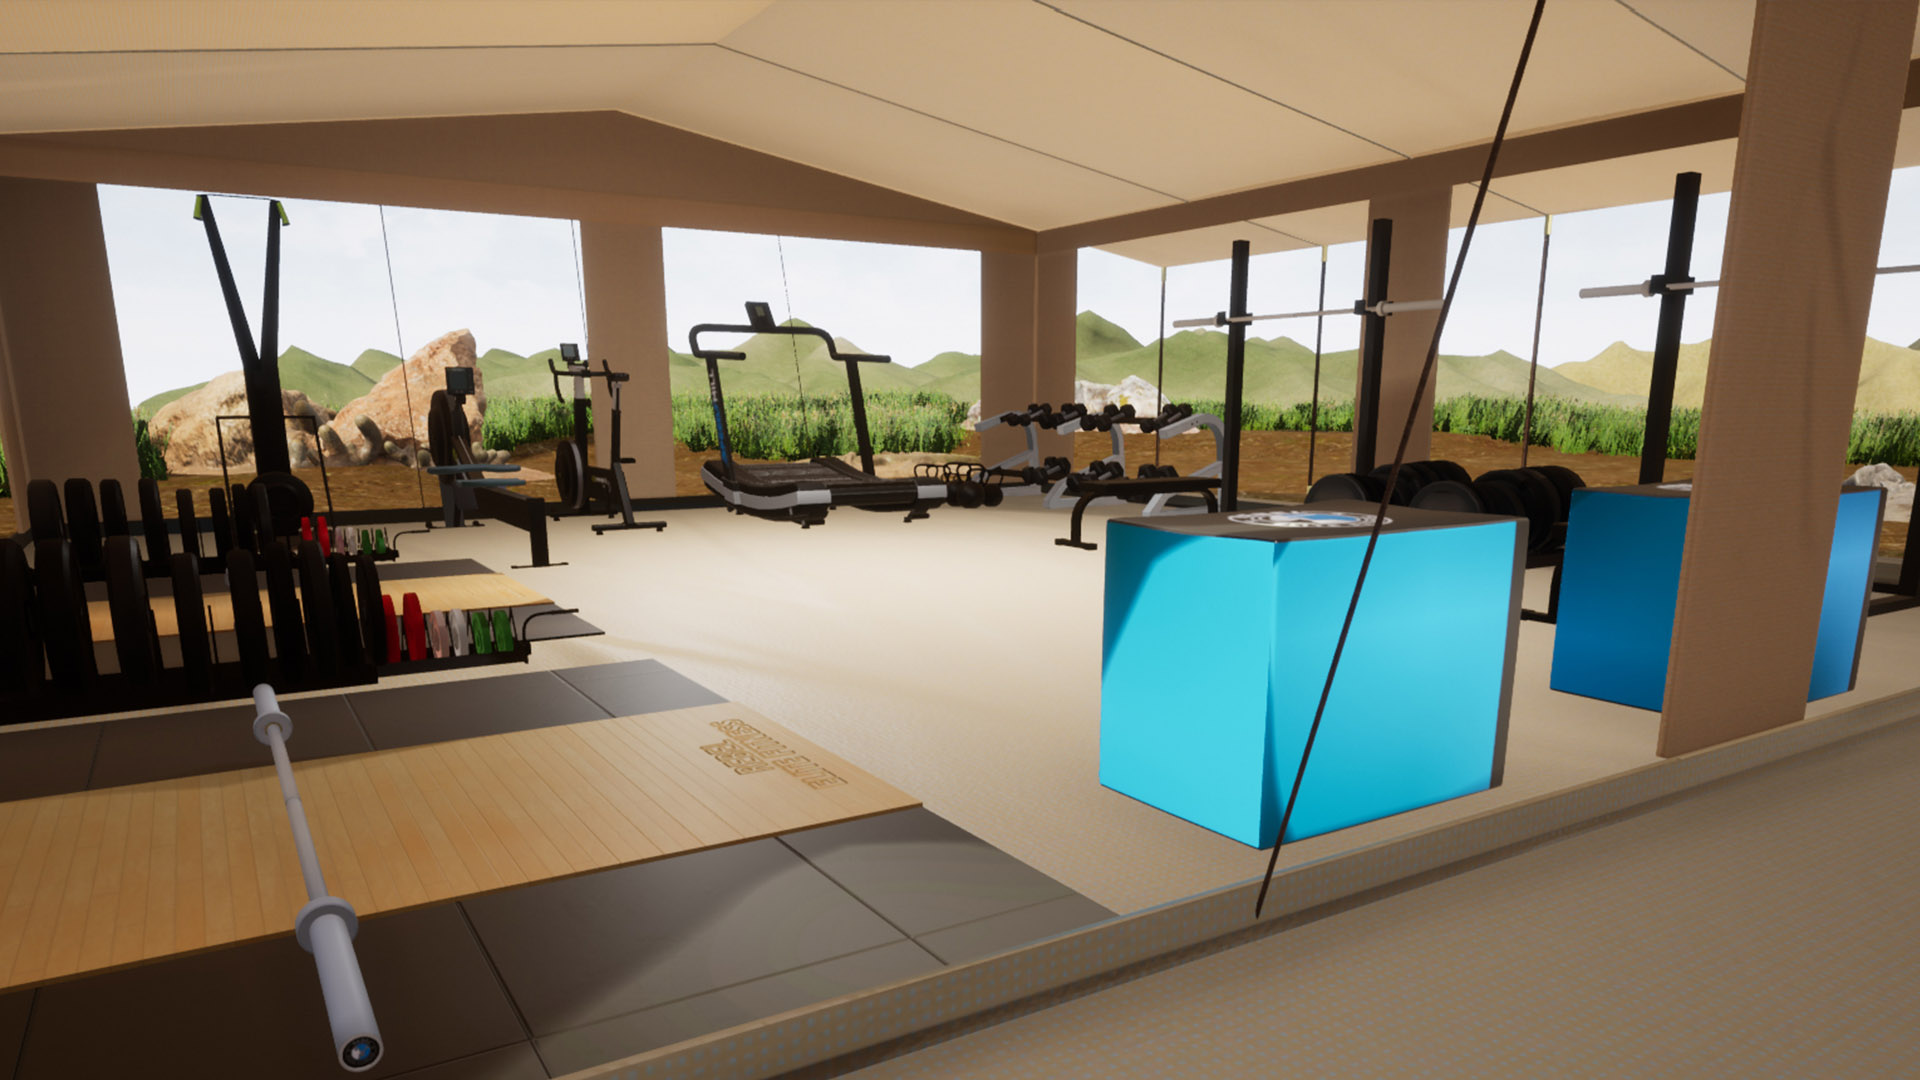 Rebel 3d Gym layout for a commercial style gym